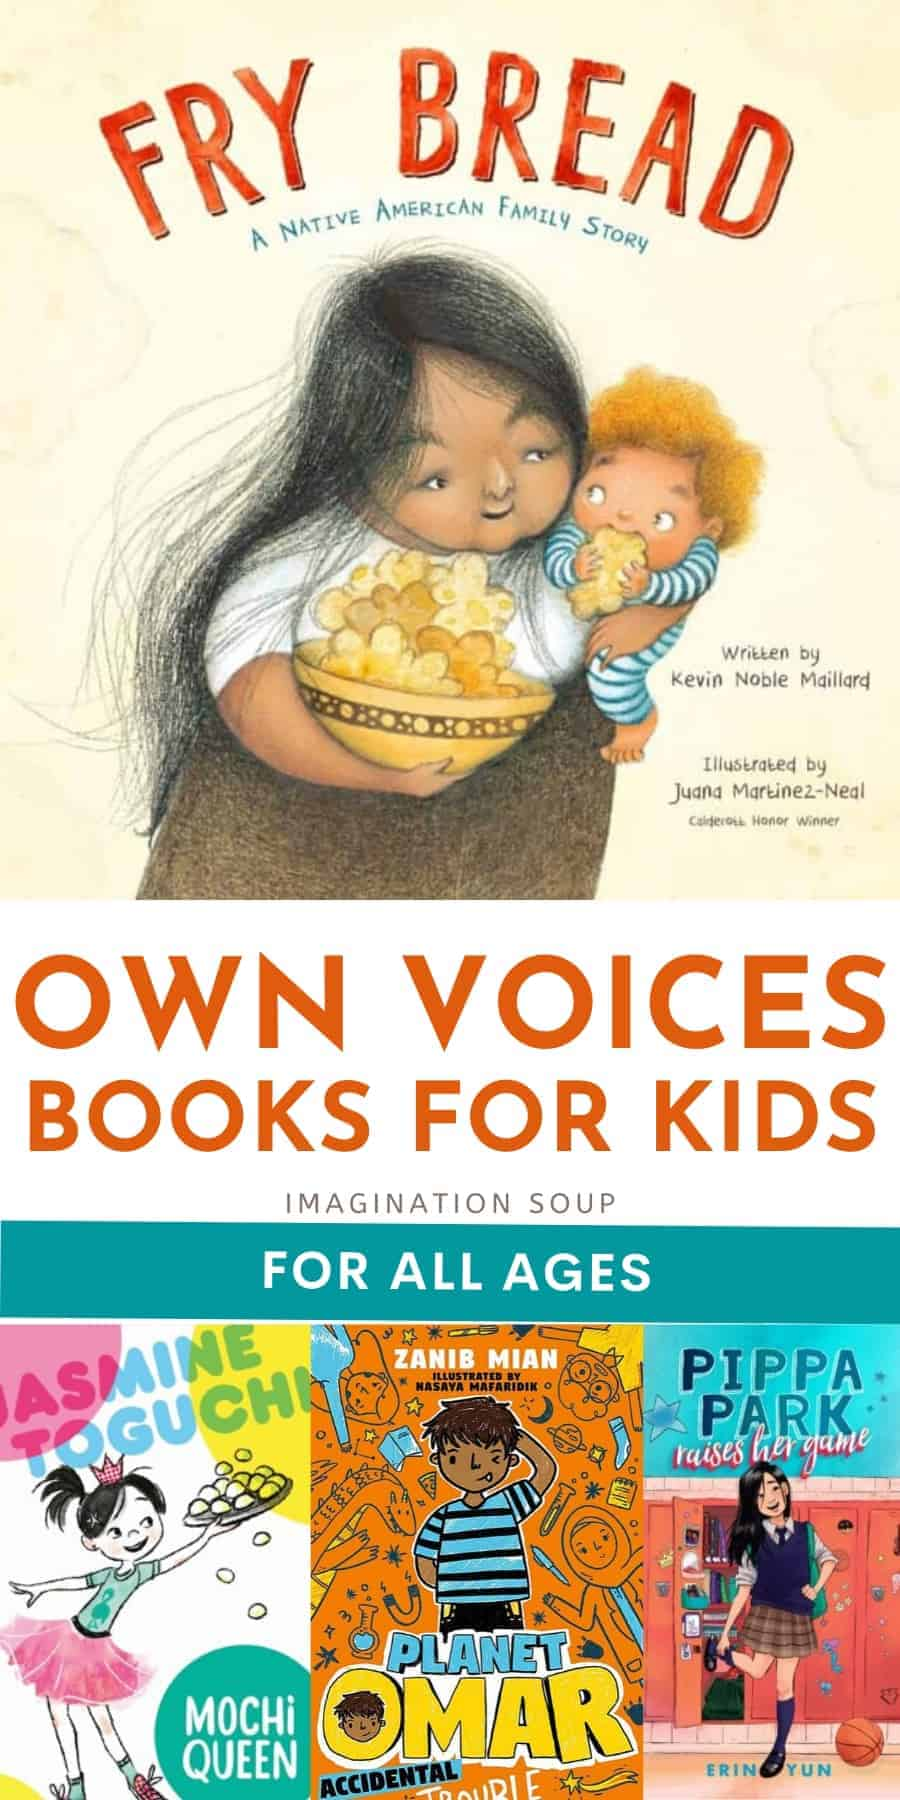 OwnVoices Books for Kids of All Ages